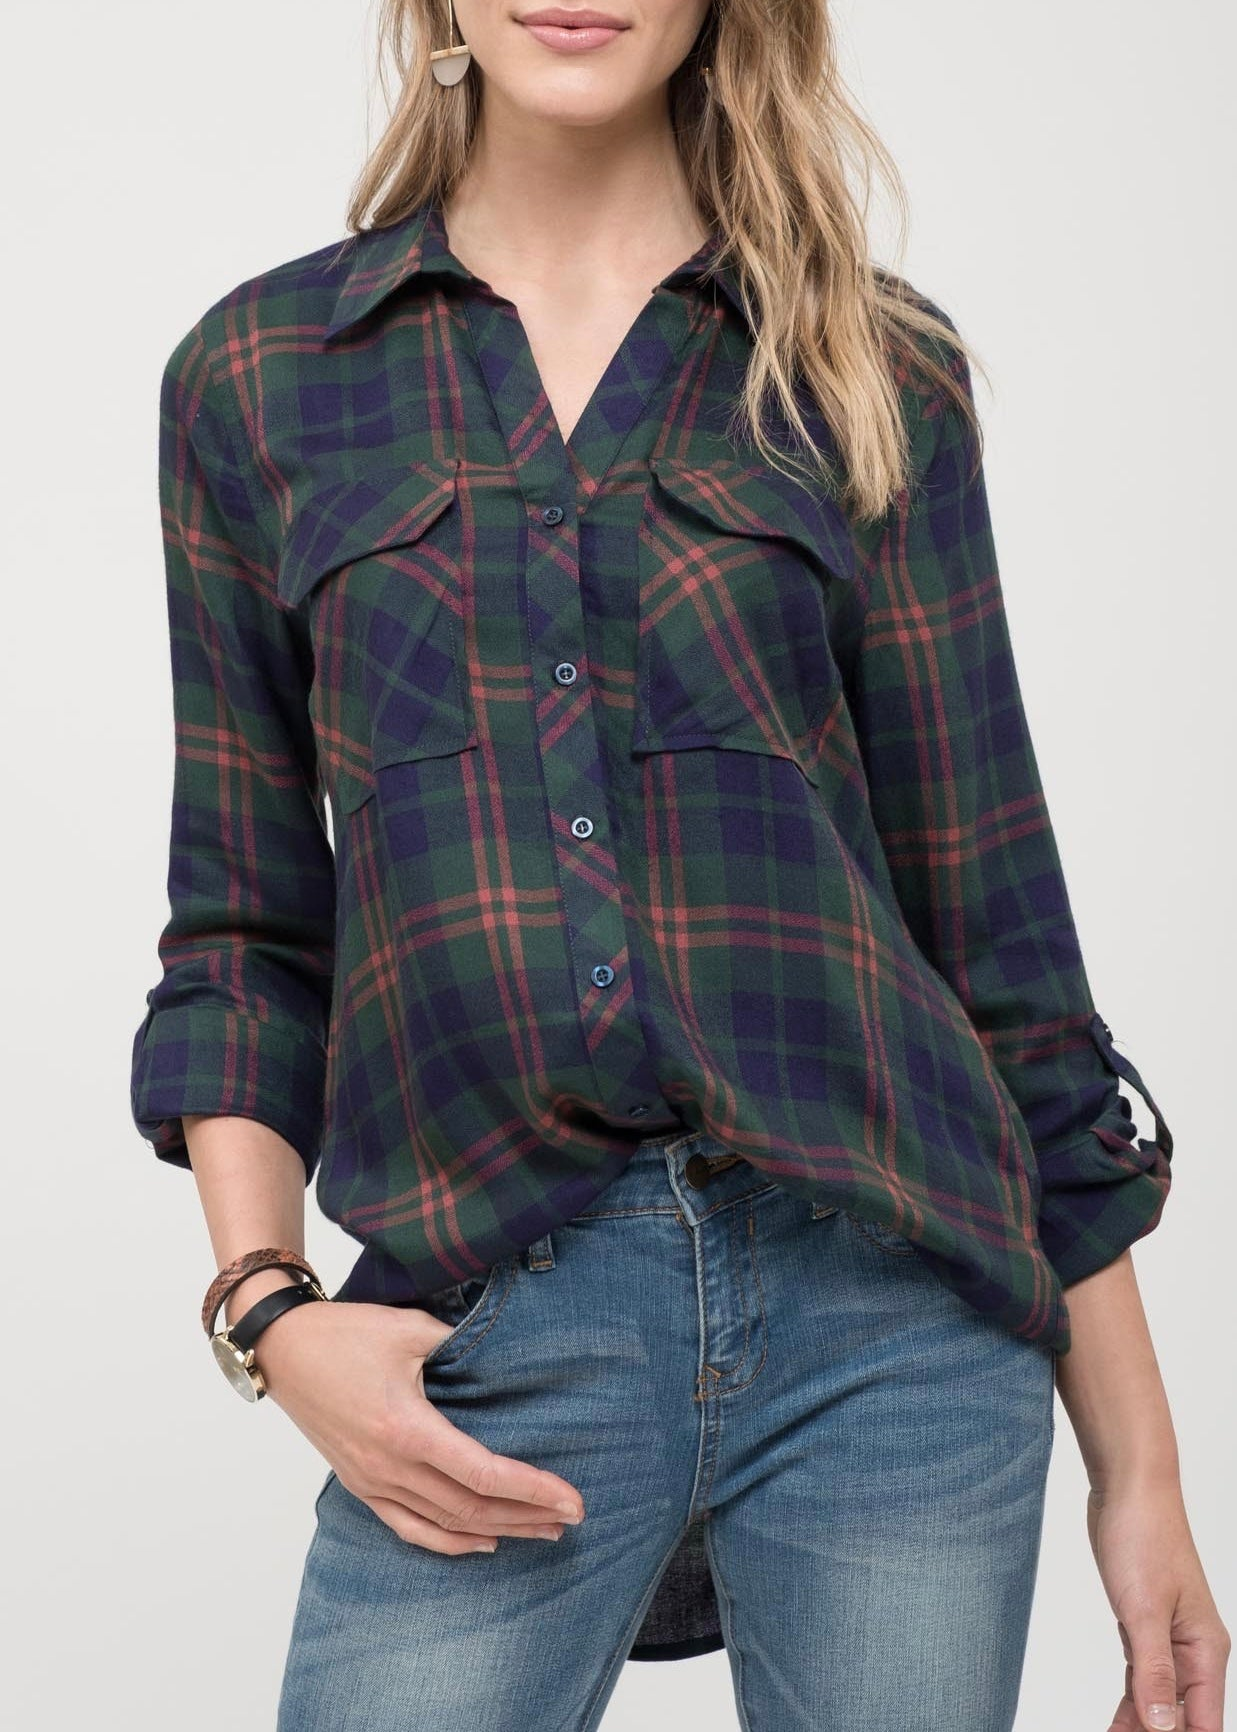 GF Plaid Button Up